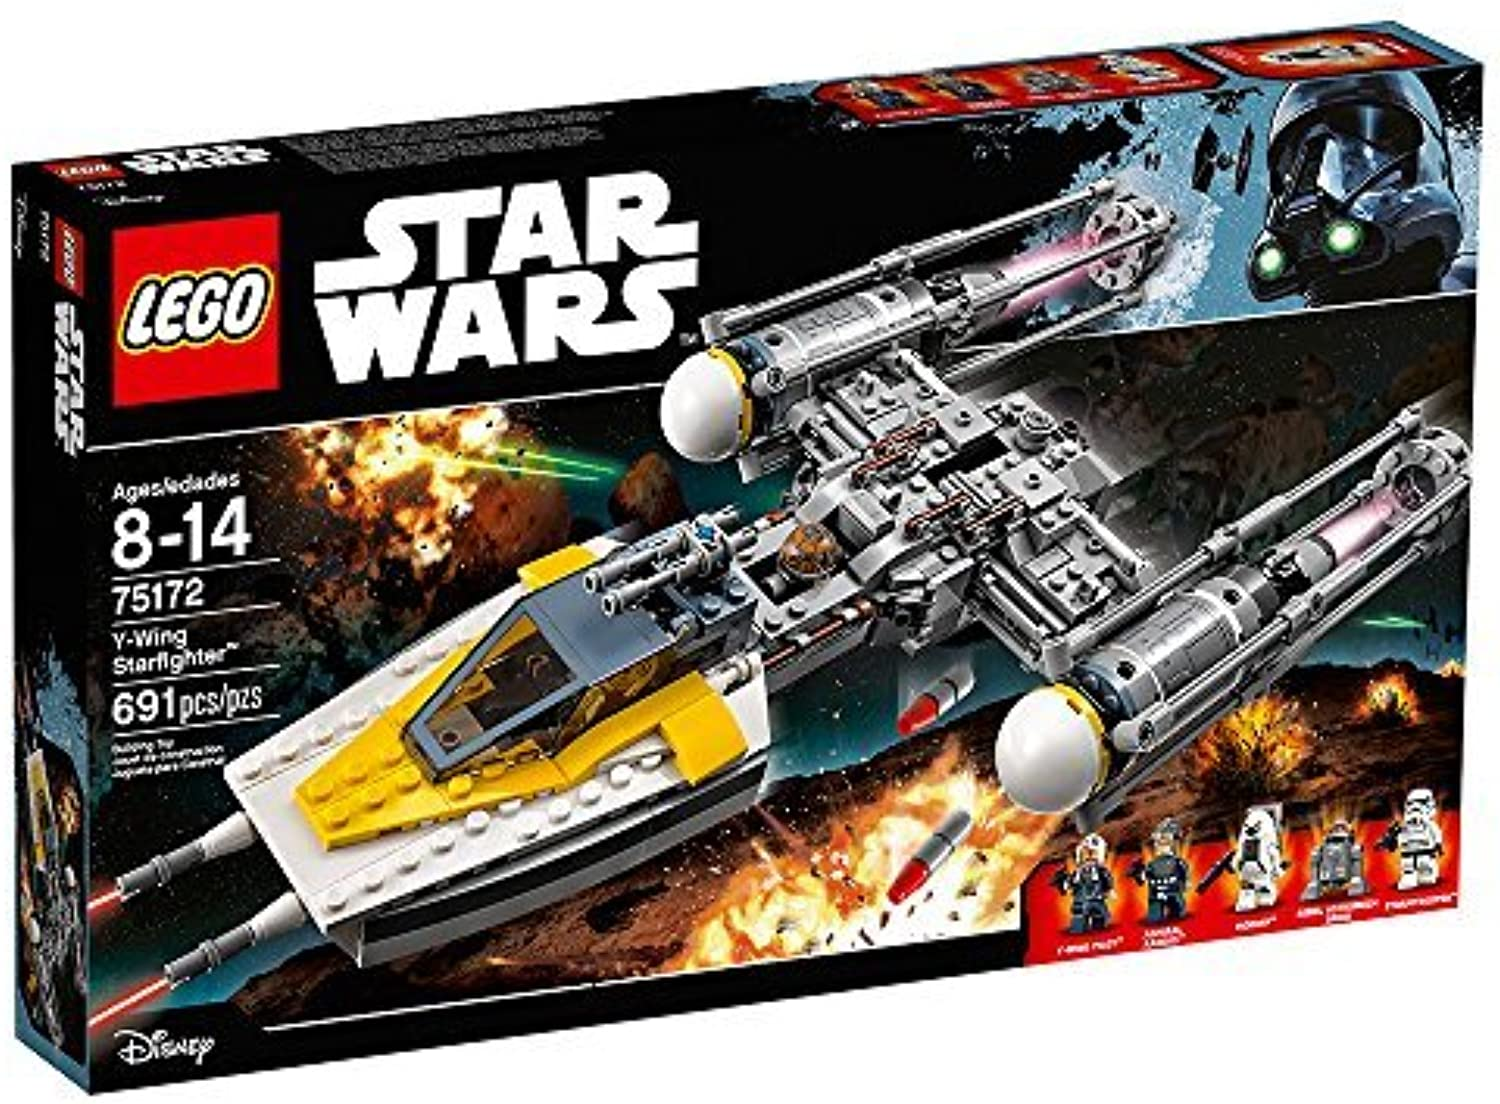 LEGO Star Wars 691-Piece Y-Wing Starfighter Construction Set